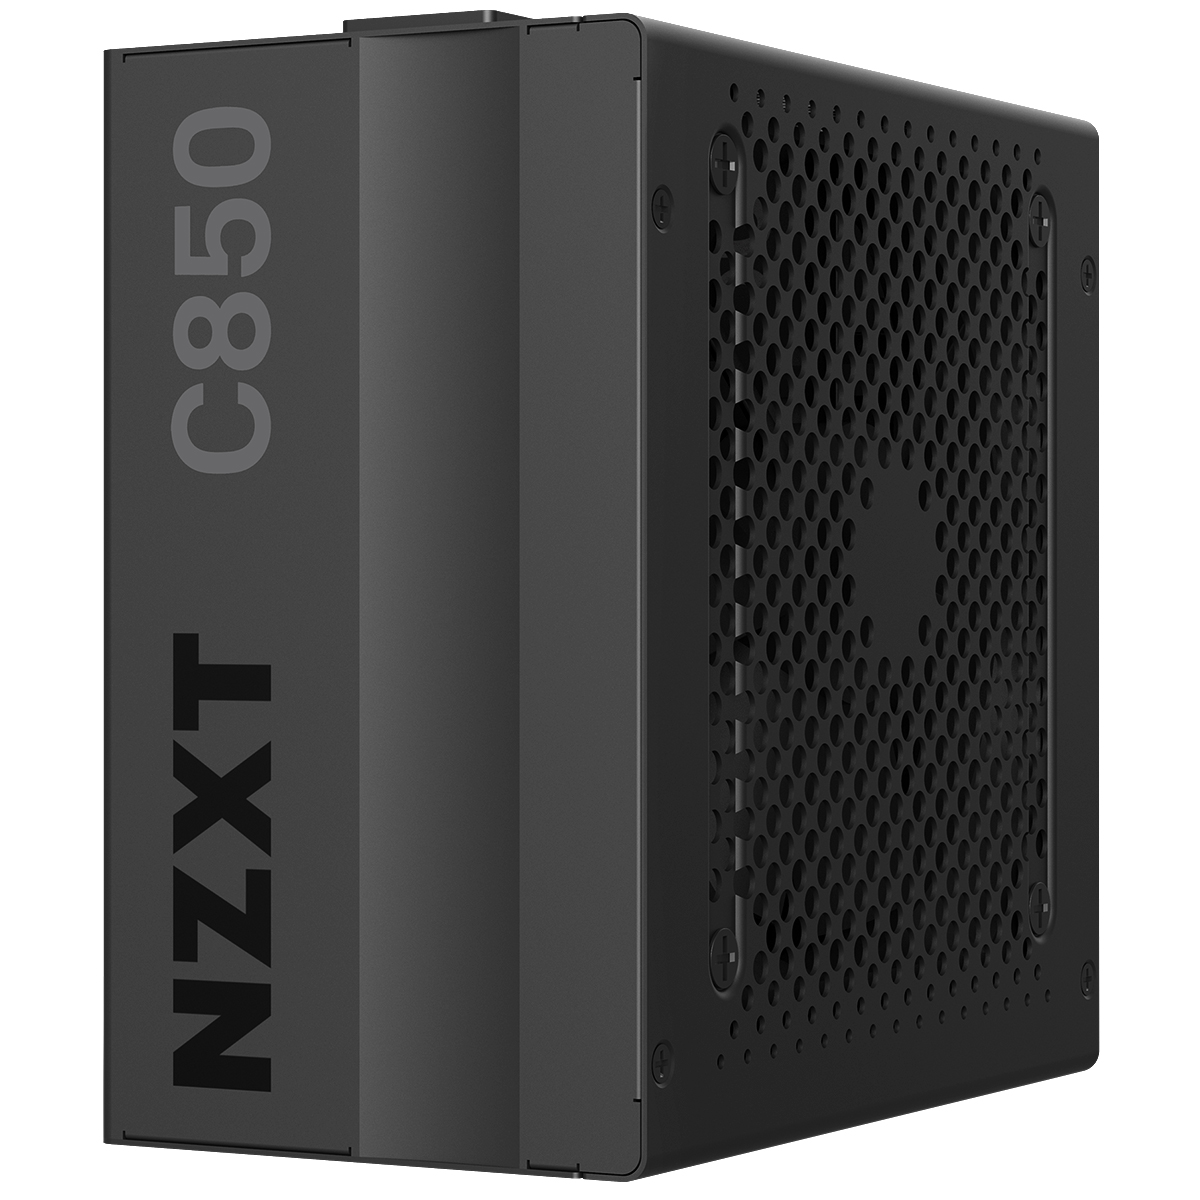 NZXT C850 80Plus Gold Full Modular